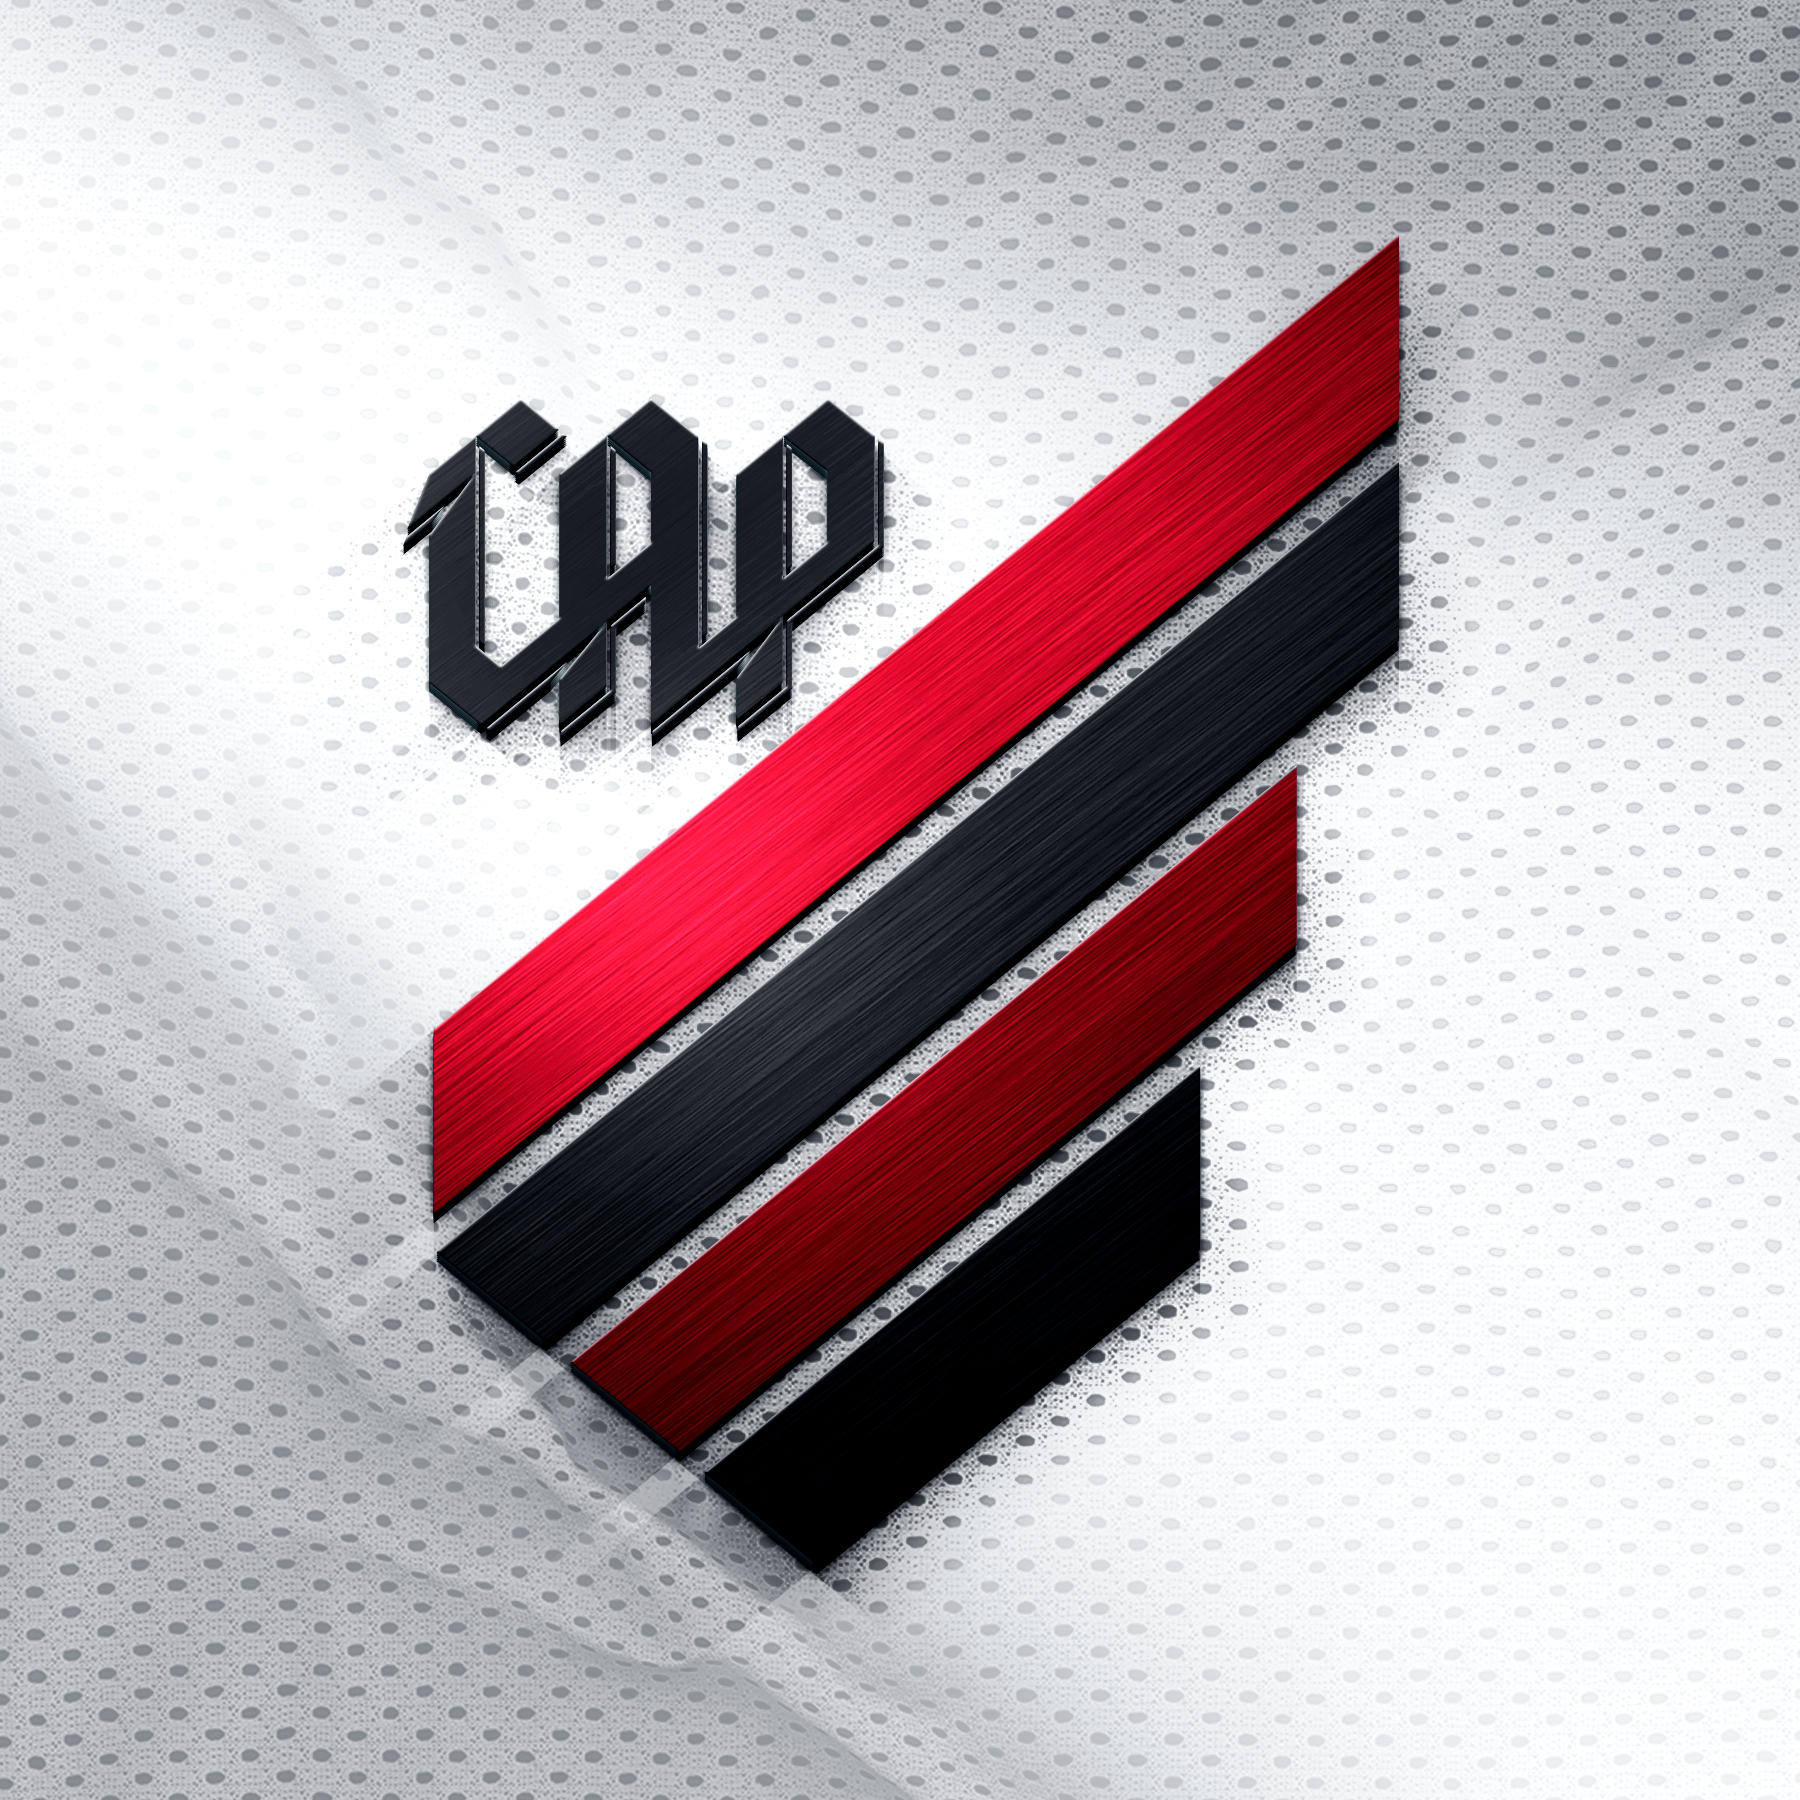 Atletico Pr Gif By Athletico Paranaense Find Share On Giphy